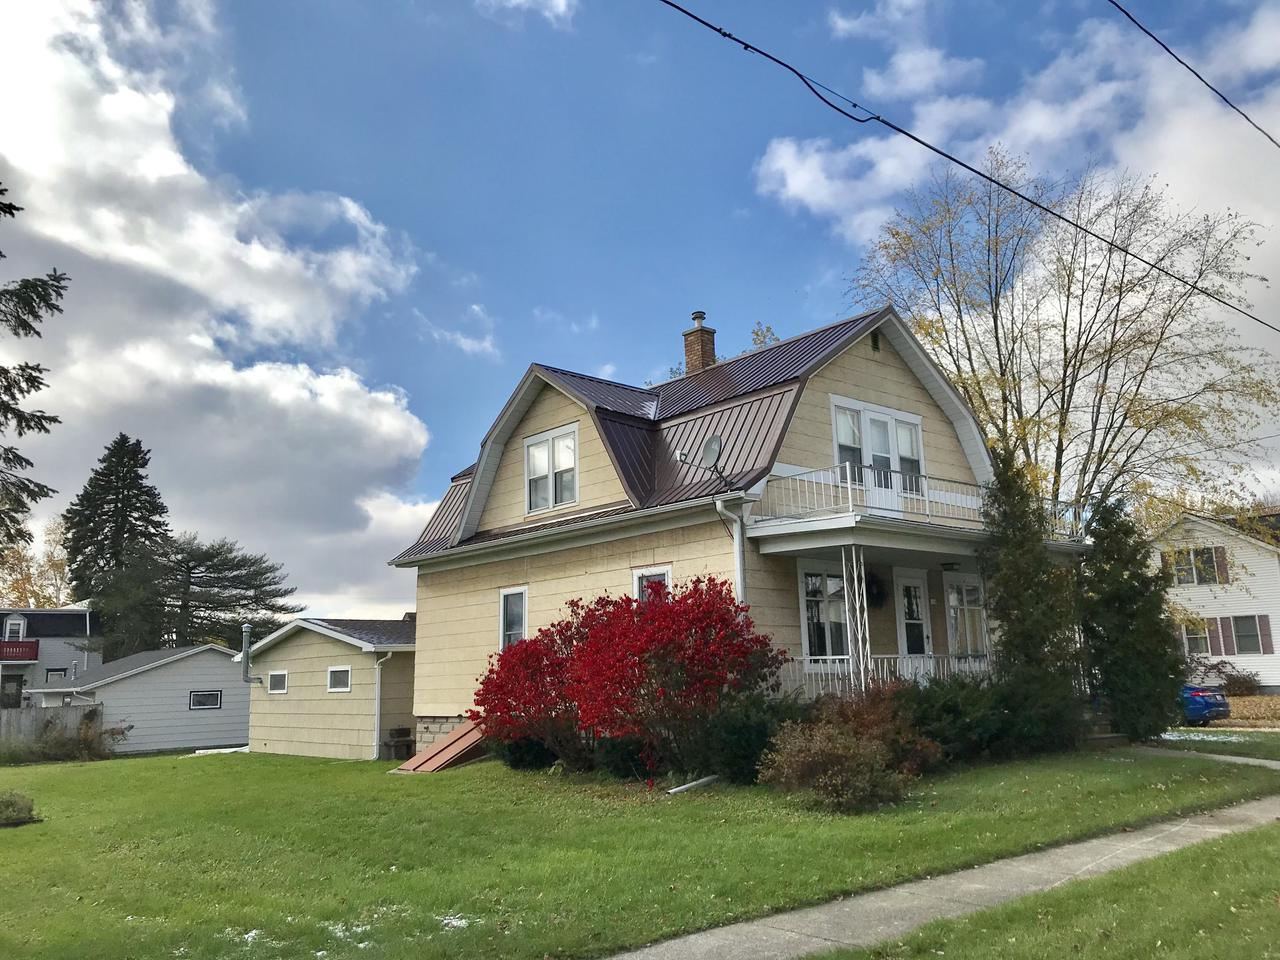 Lovely well maintained 1.5 story home on large lot in Village of Mishicot. Many updates, metal roof (2018), windows, boiler, water heater to name a few. The wood work is beautiful and the rooms spacious. There are 3 BR's, 2 full baths, an office, a bonus room and an awesome rec room great for entertaining. The garage is an attached oversized 2 car with a new parking slab for added parking. There is a nice storage shed too. Lots of storage and central air to boot.